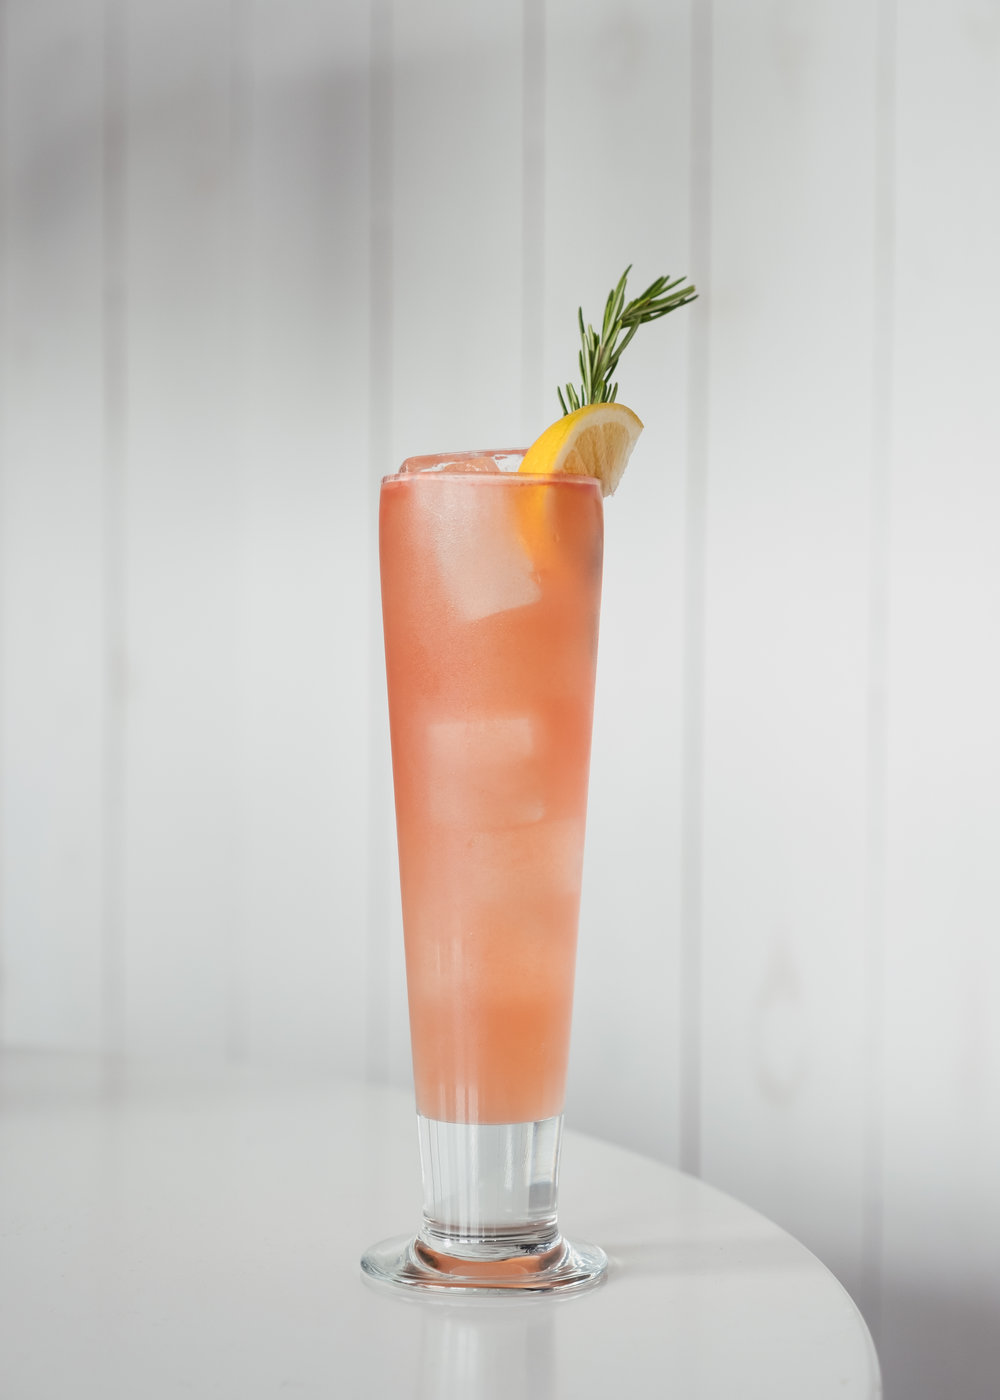 ingredients - 2 oz Citrus-forward gin¾ oz ginger liqueur1 oz fresh lemon juice½ oz *Rosemary simple syrup3-4 one-inch cubes of watermelonDry lemon soda